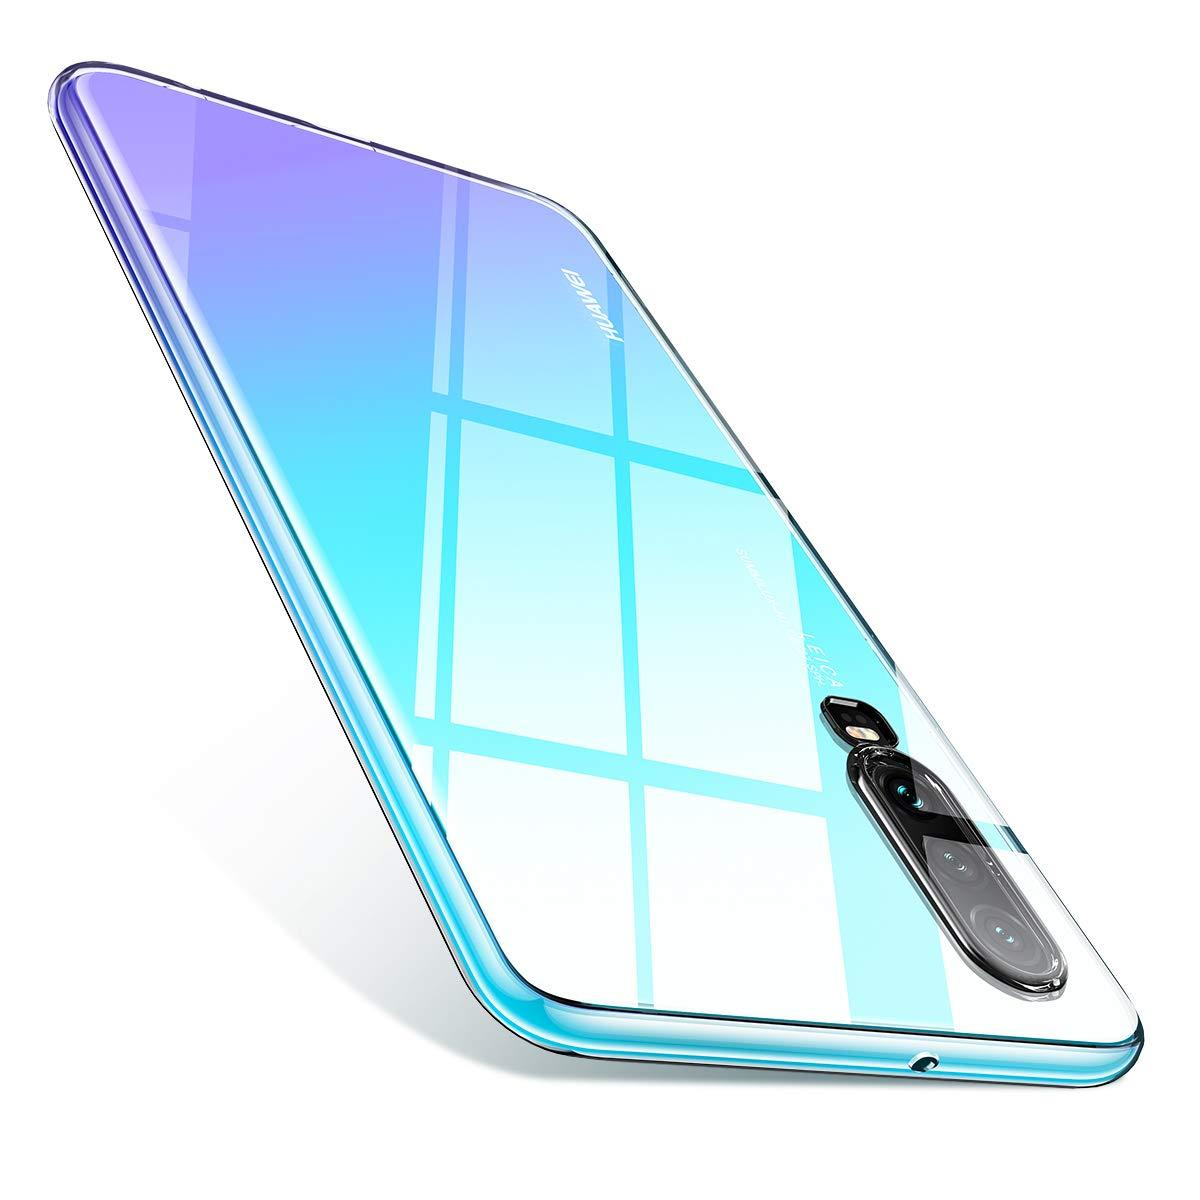 Case-for-Huawei-P30-Pro-Full-Body-Ultra-Thin-Slim-TPU-Protective-Phone-Cover thumbnail 19